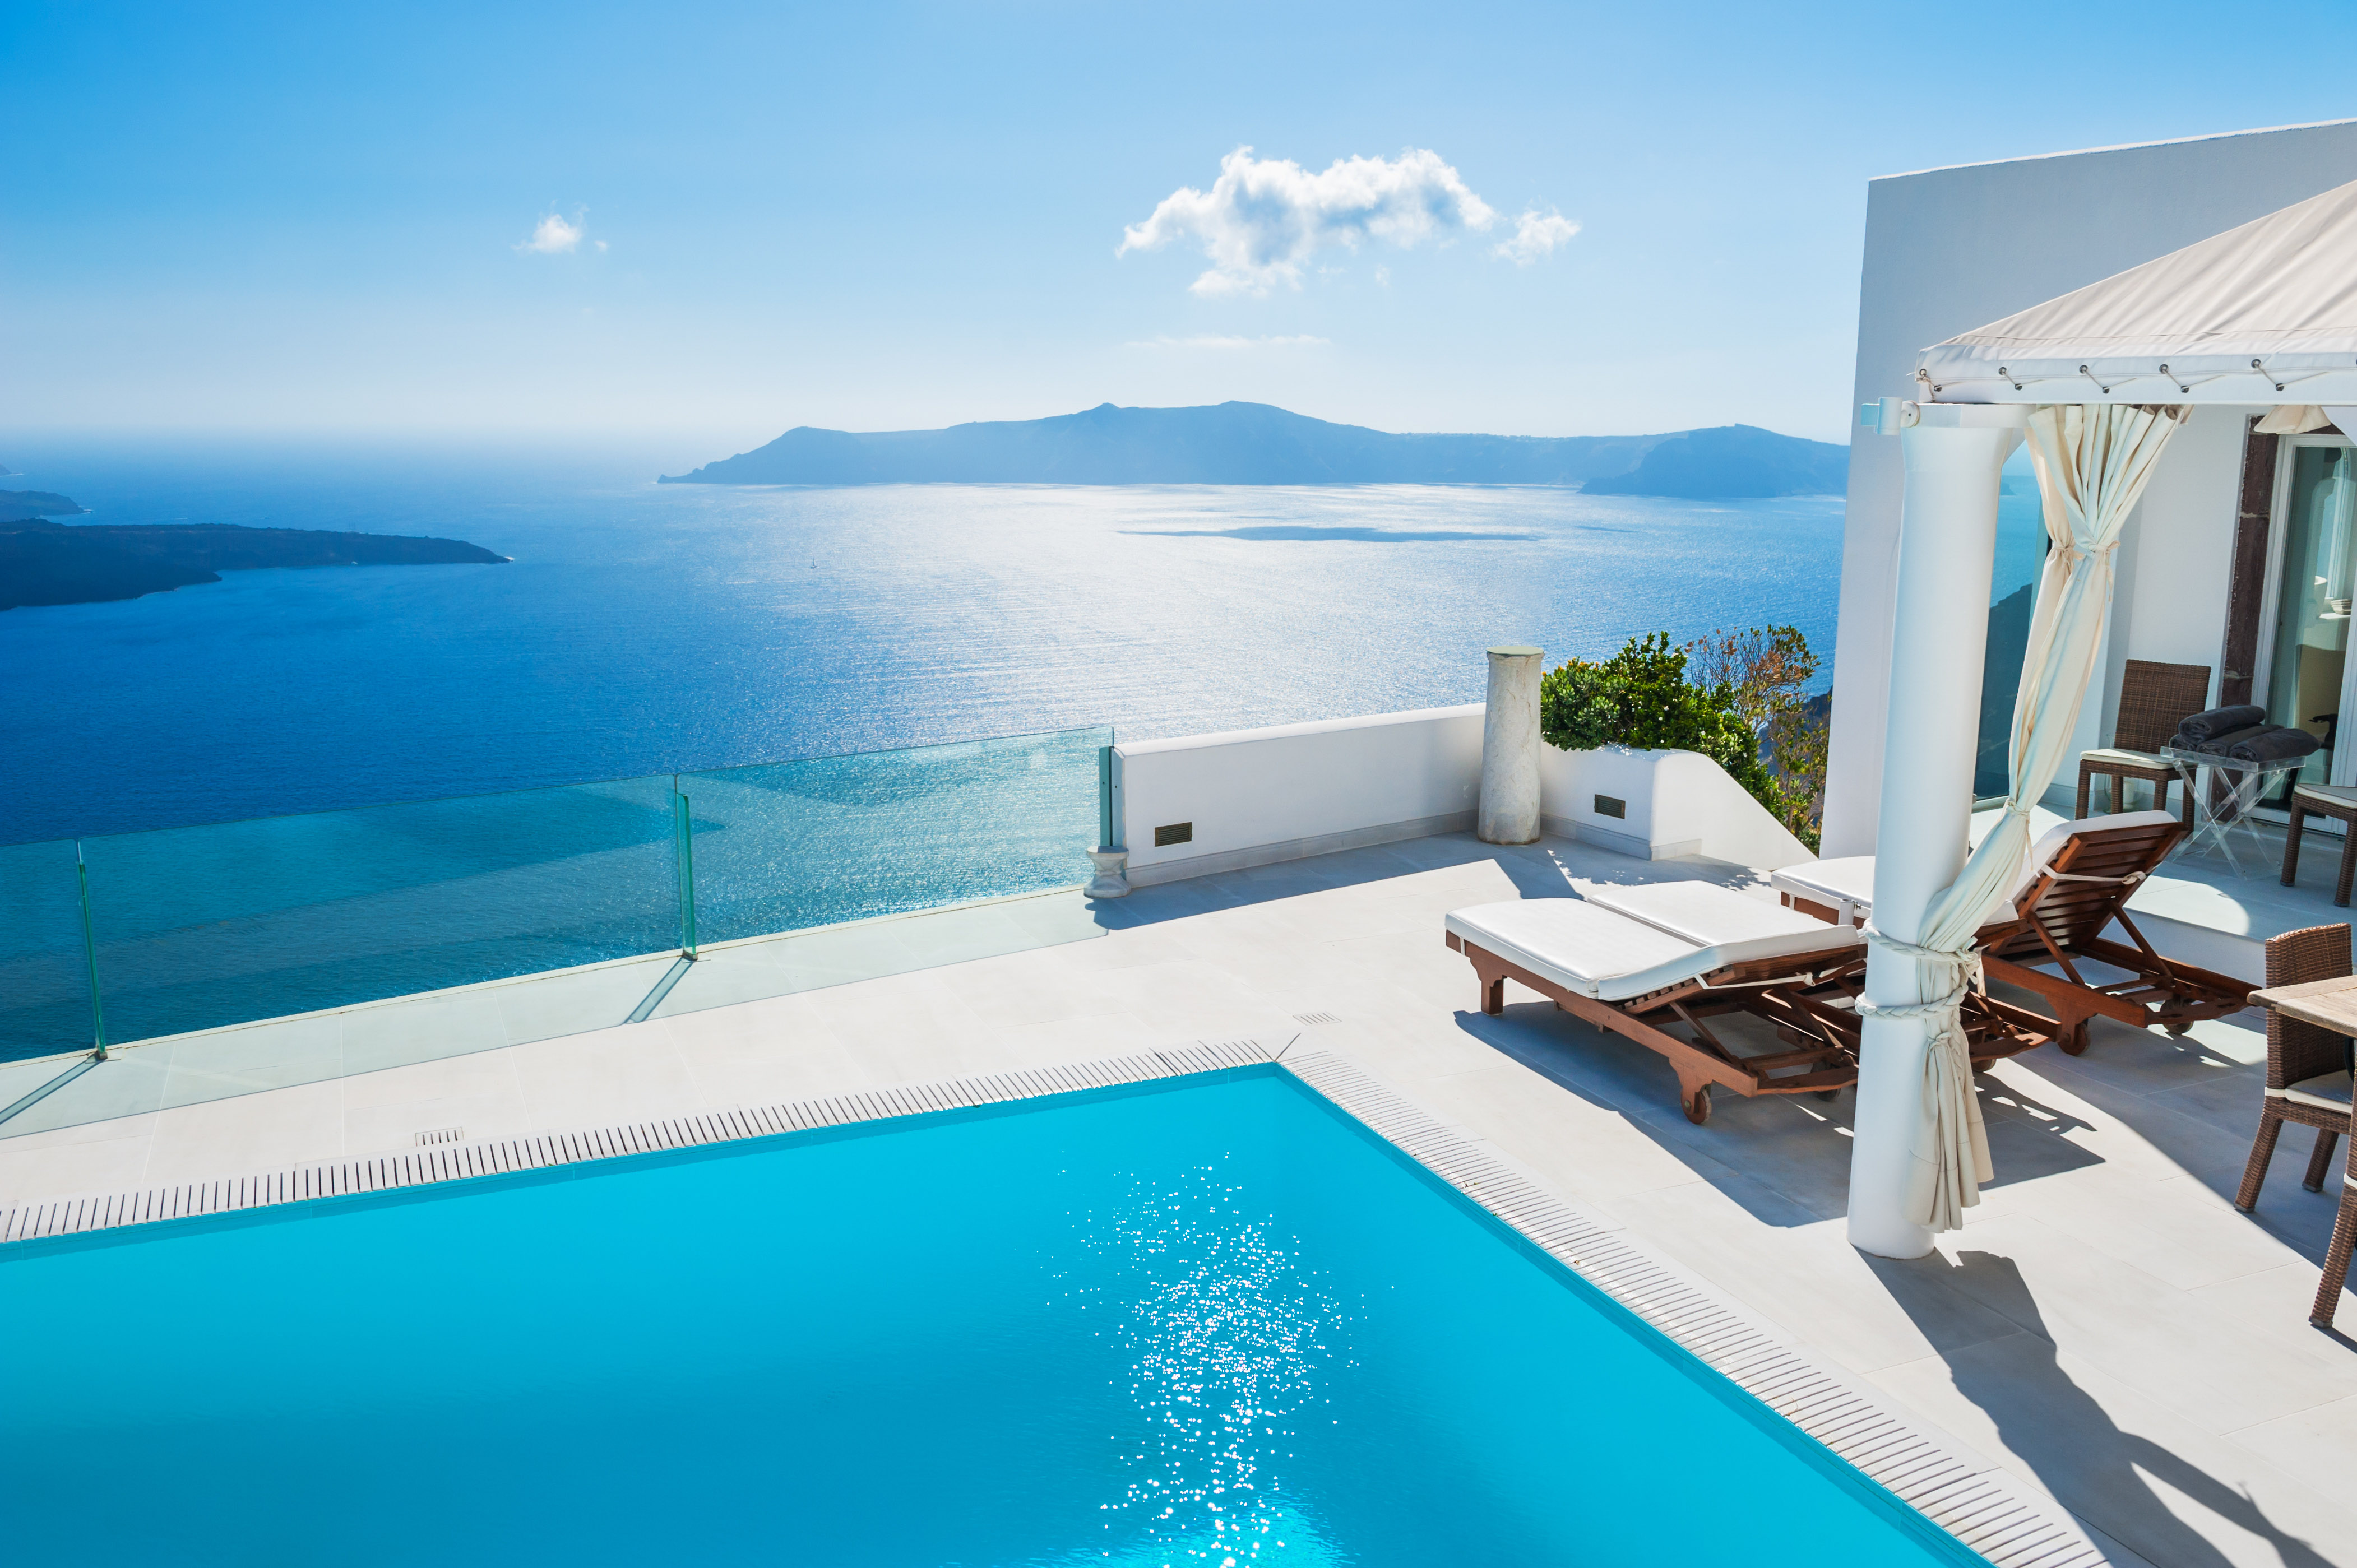 A Wedding Planner in Santorini's Guide to the Island's Secrets